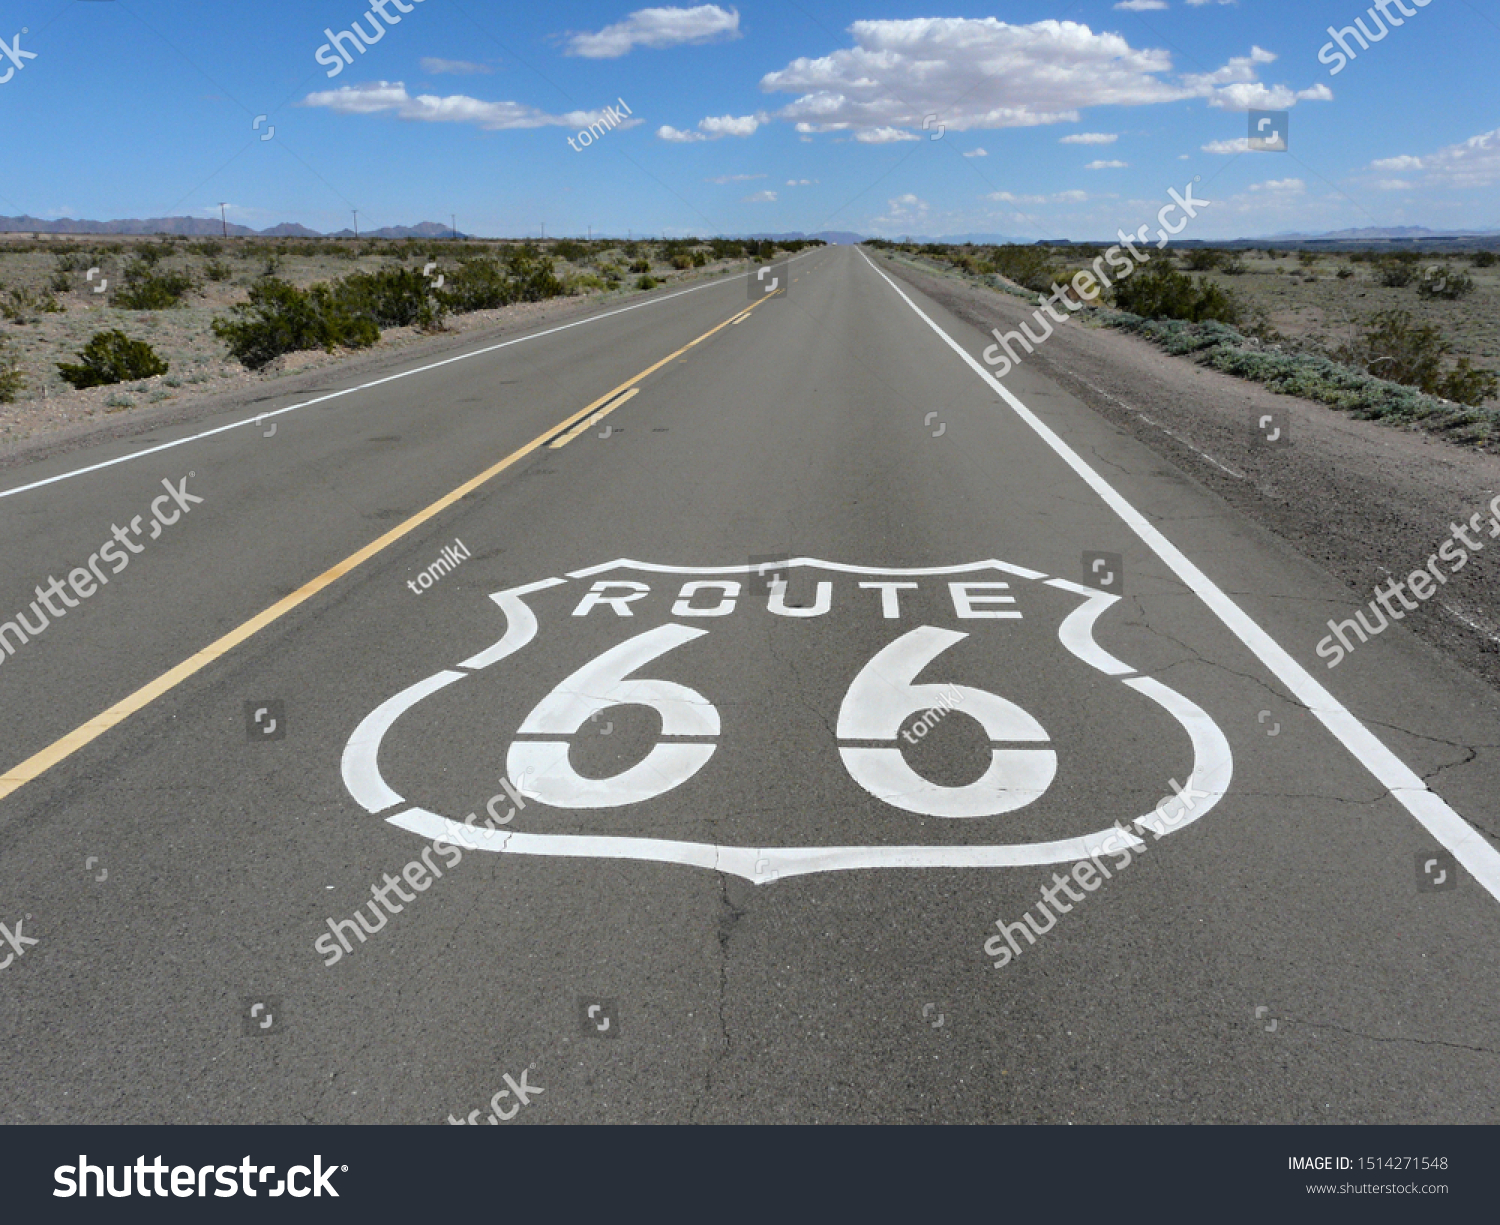 Route 66 road sign in Mojave Desert, California #1514271548